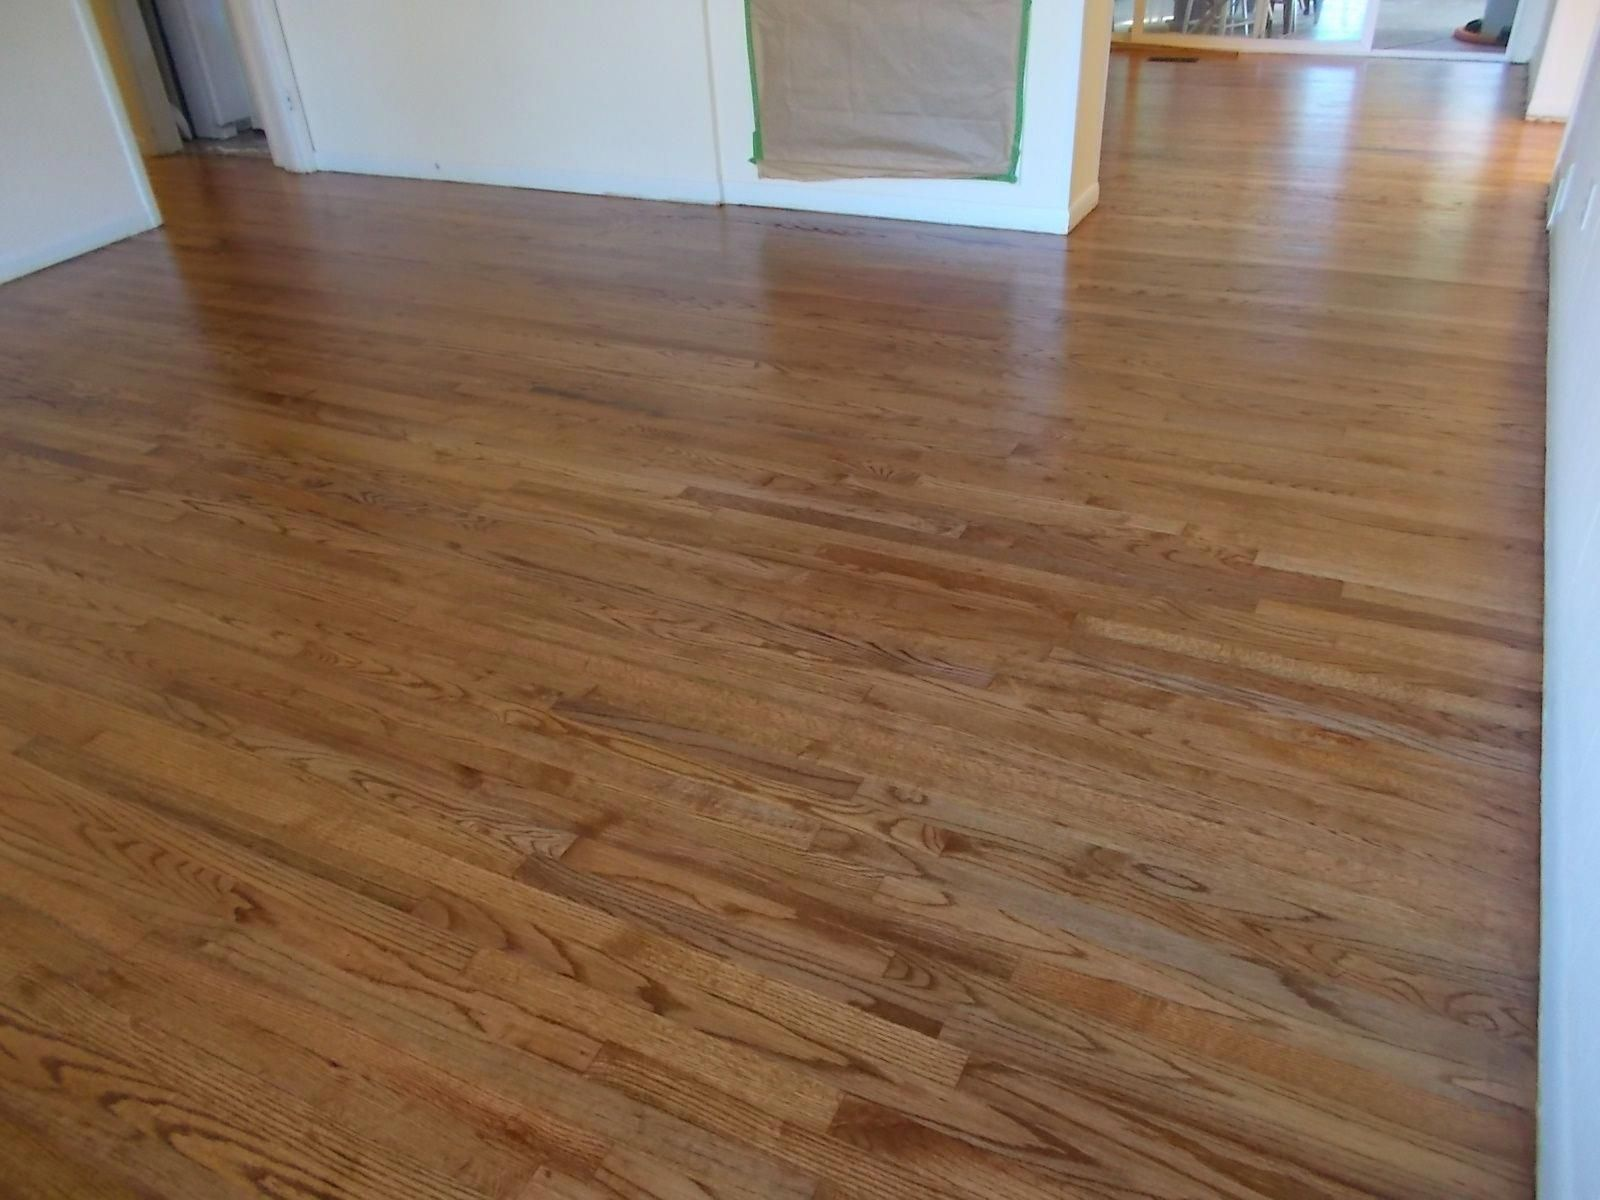 1958 Red Oak Floors Stained With Minwax Early American Satin Finish Polyurethane Hardwoodflooringkitch Red Oak Floors Oak Floor Stains Wood Floor Finishes